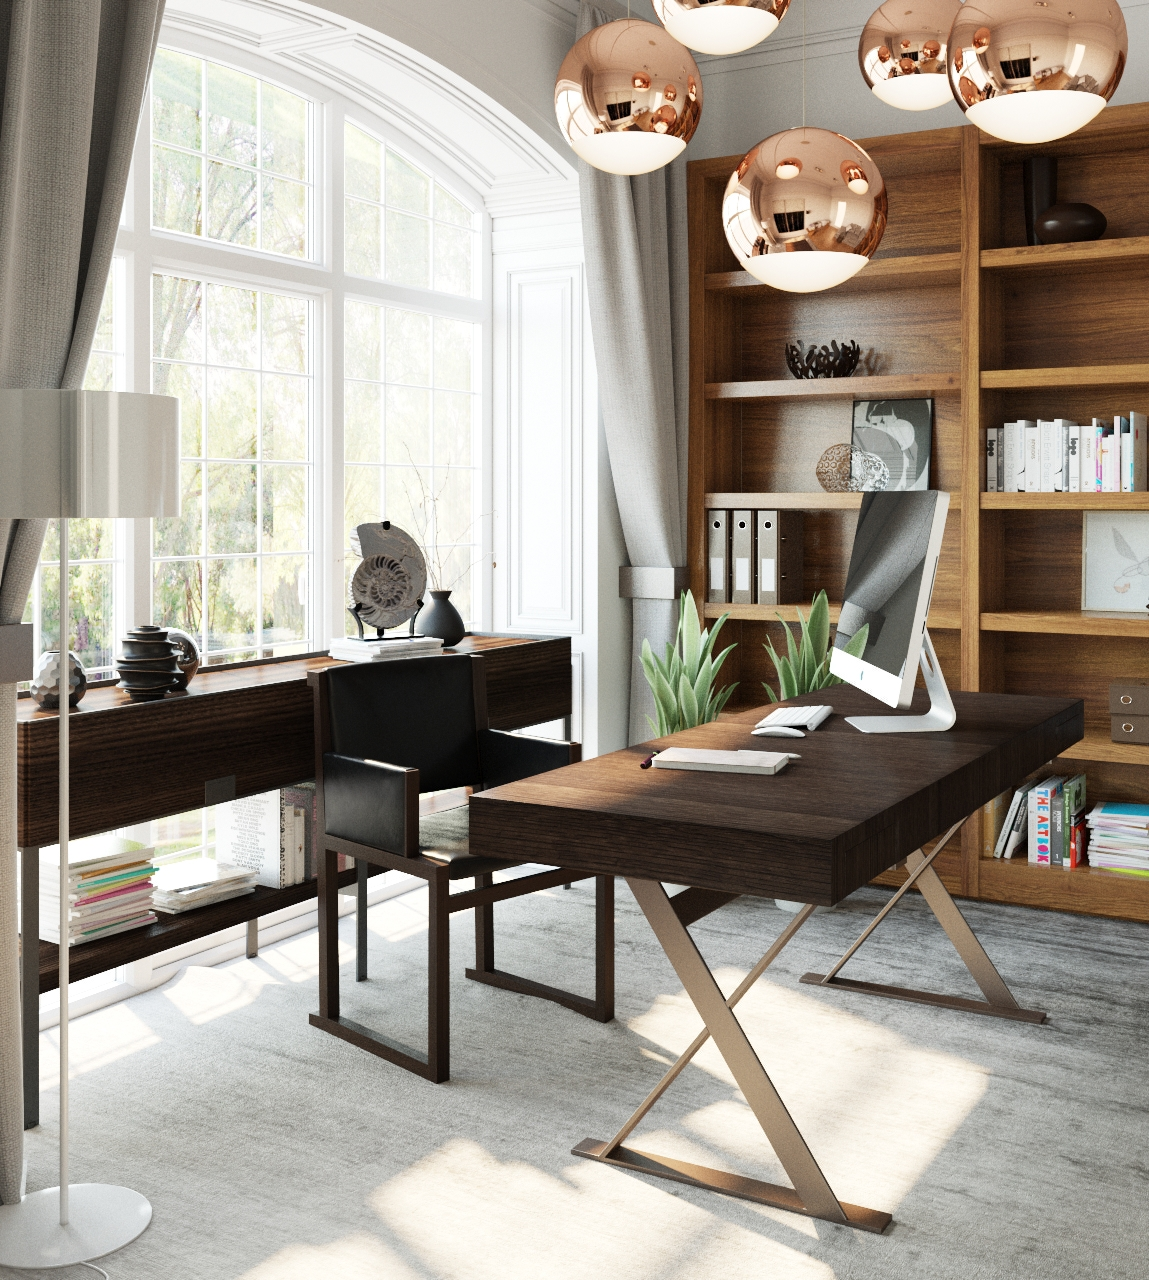 3 examples of modern simplicity Home office interior design pictures